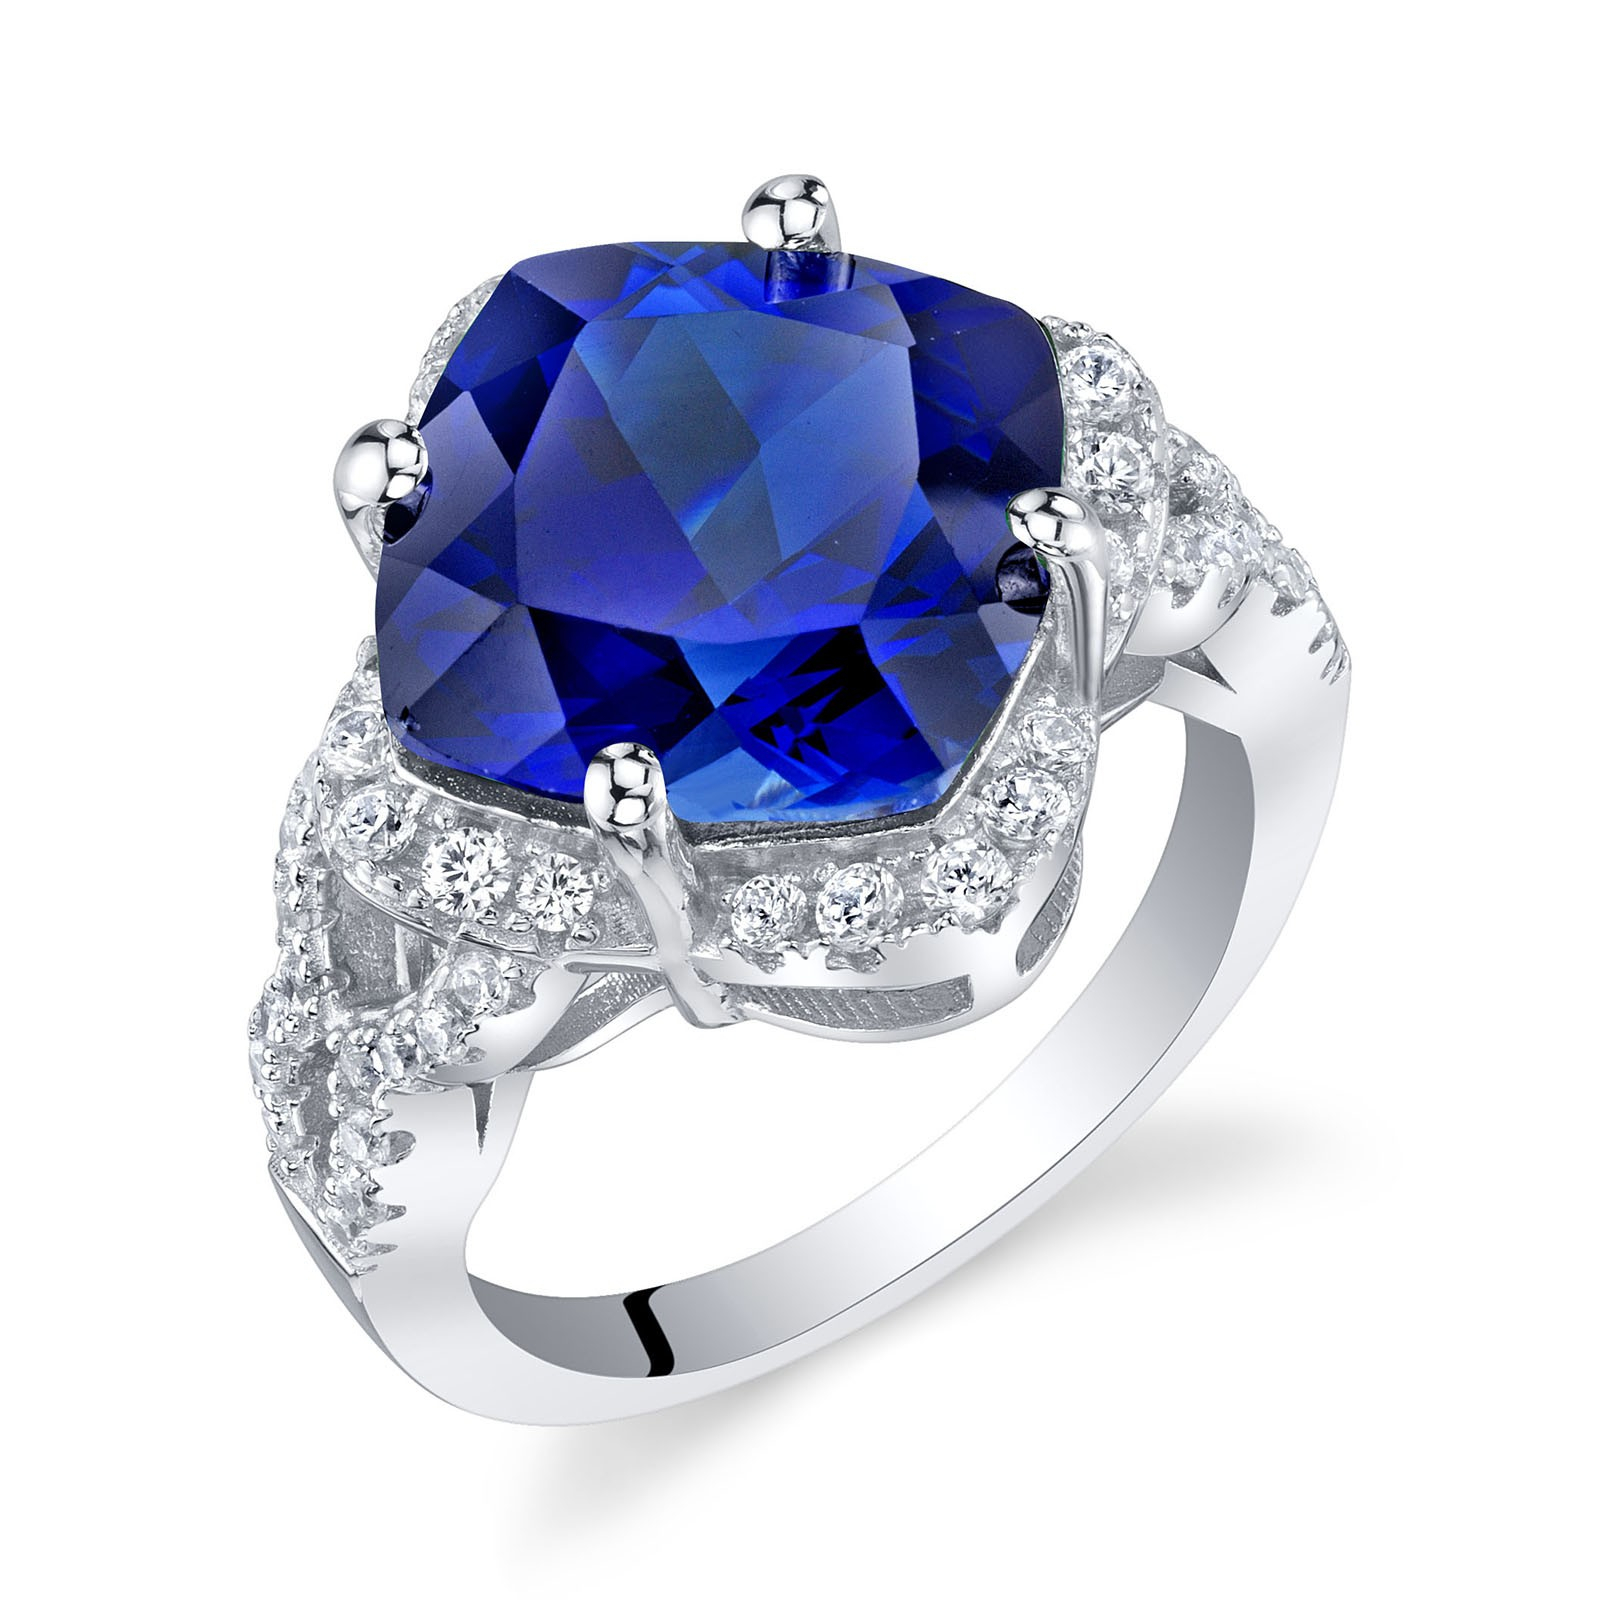 Cushion Cut Sapphire Halo Ring In Sterling Silver Inside Cushion Cut Sapphire Rings (View 14 of 25)